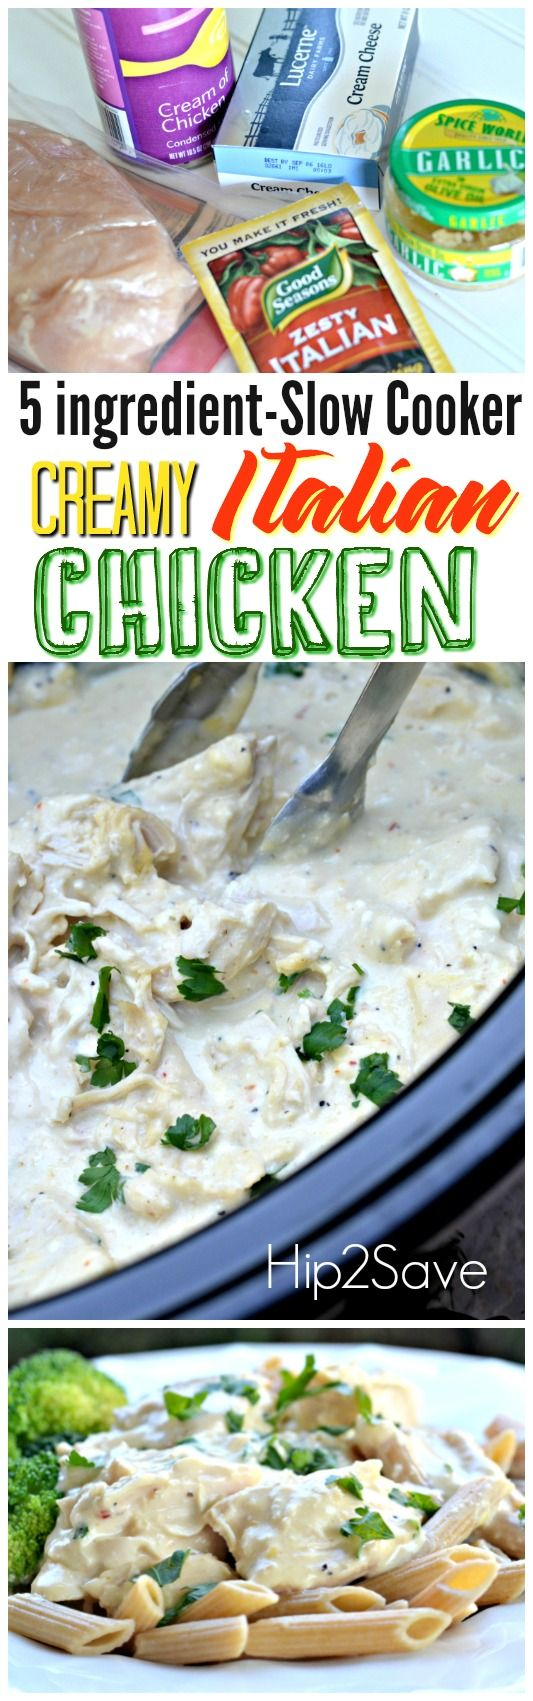 Easy Slow Cooker Creamy Italian Chicken (Just 5 Ingredients)